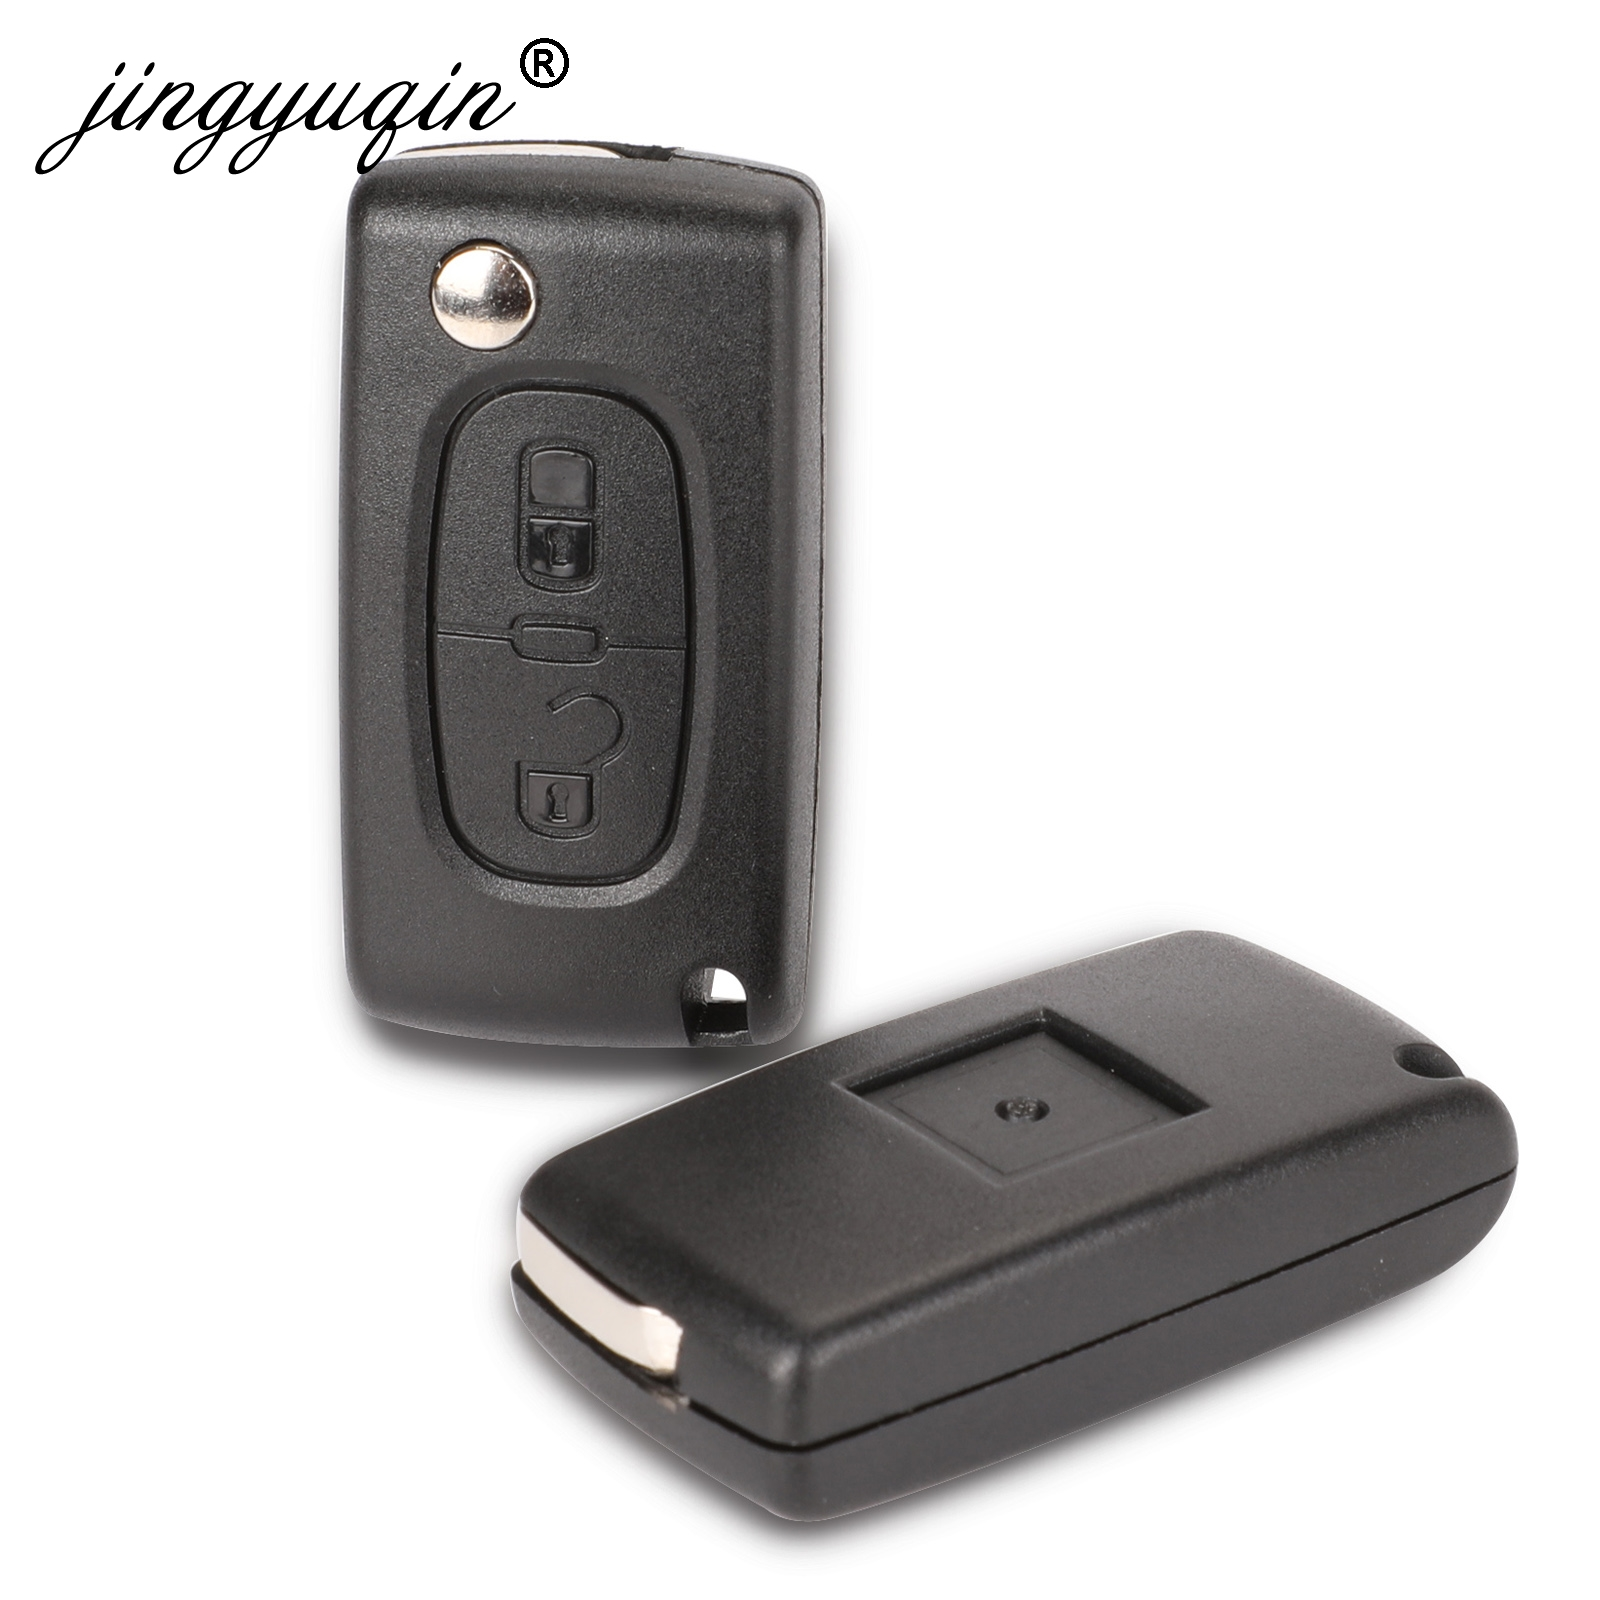 jingyuqin 2 Buttons Flip Folding Key Case Blank Shell For Peugeot 107 207 407 307 307S 308 407 607 807 VA2/HCA Ce0523 Ce0536(China)